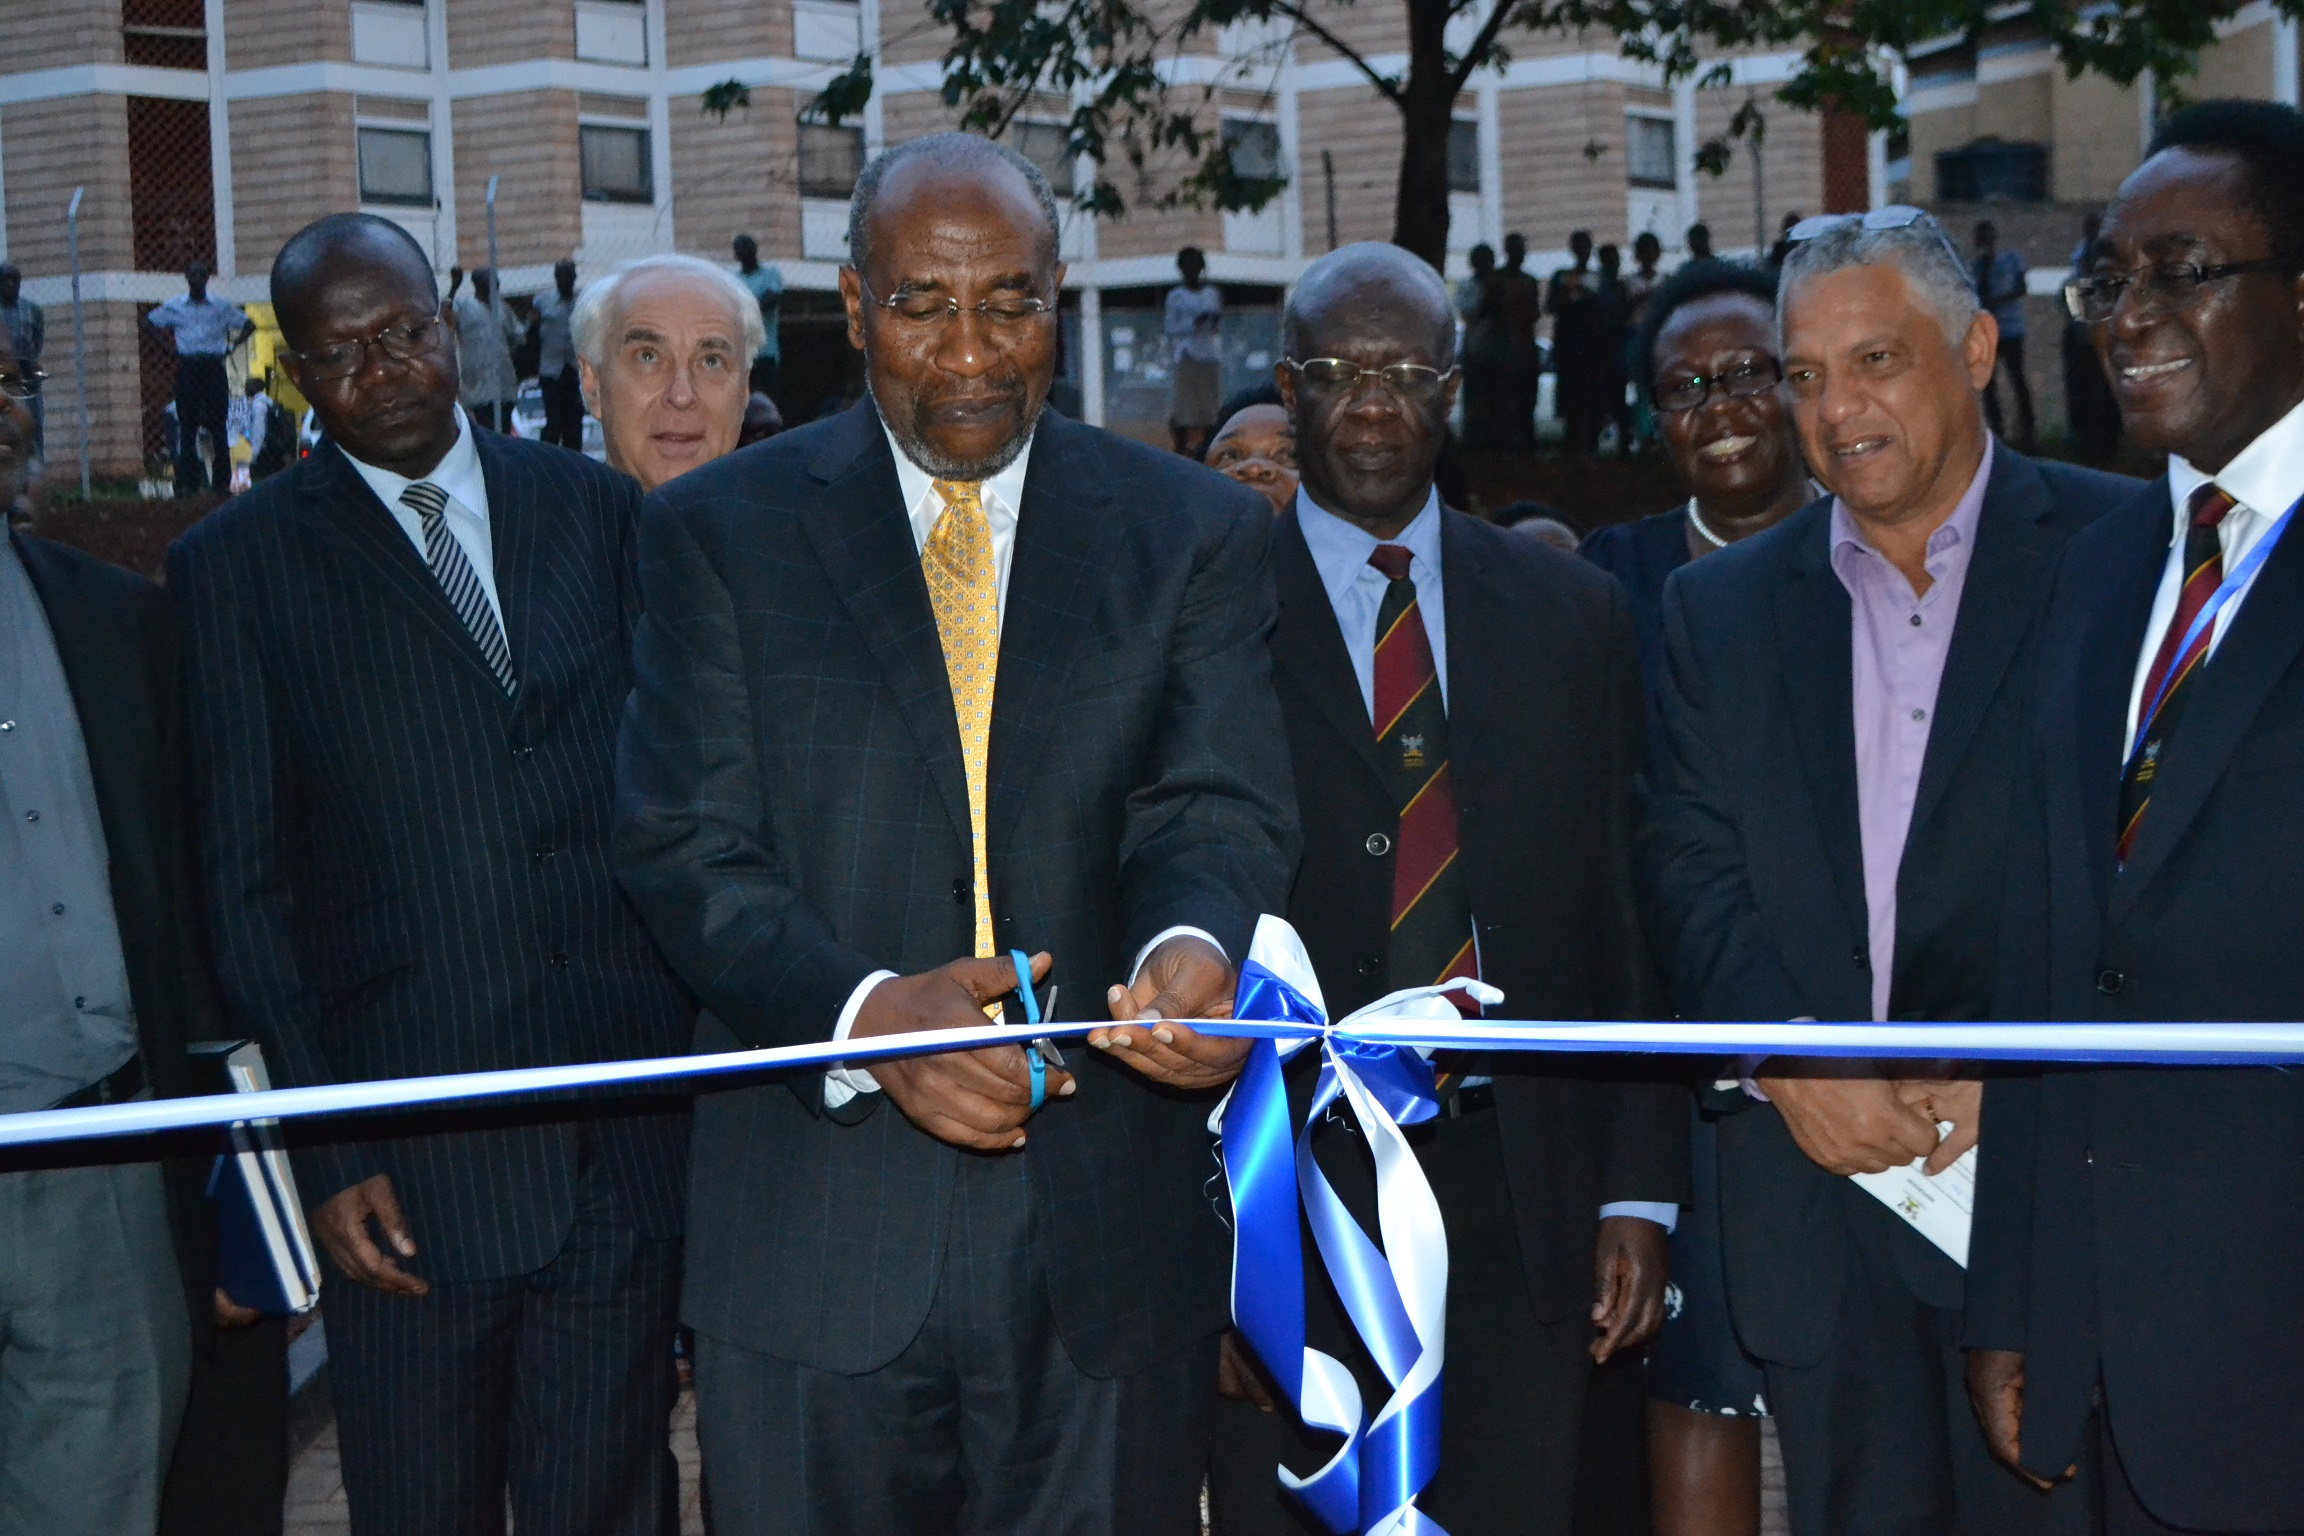 PM Dr Rugunda cuts tape to officially open the  new IDI  McKinnell knowledge centre as MUK officials look on at Makerere University  on Friday